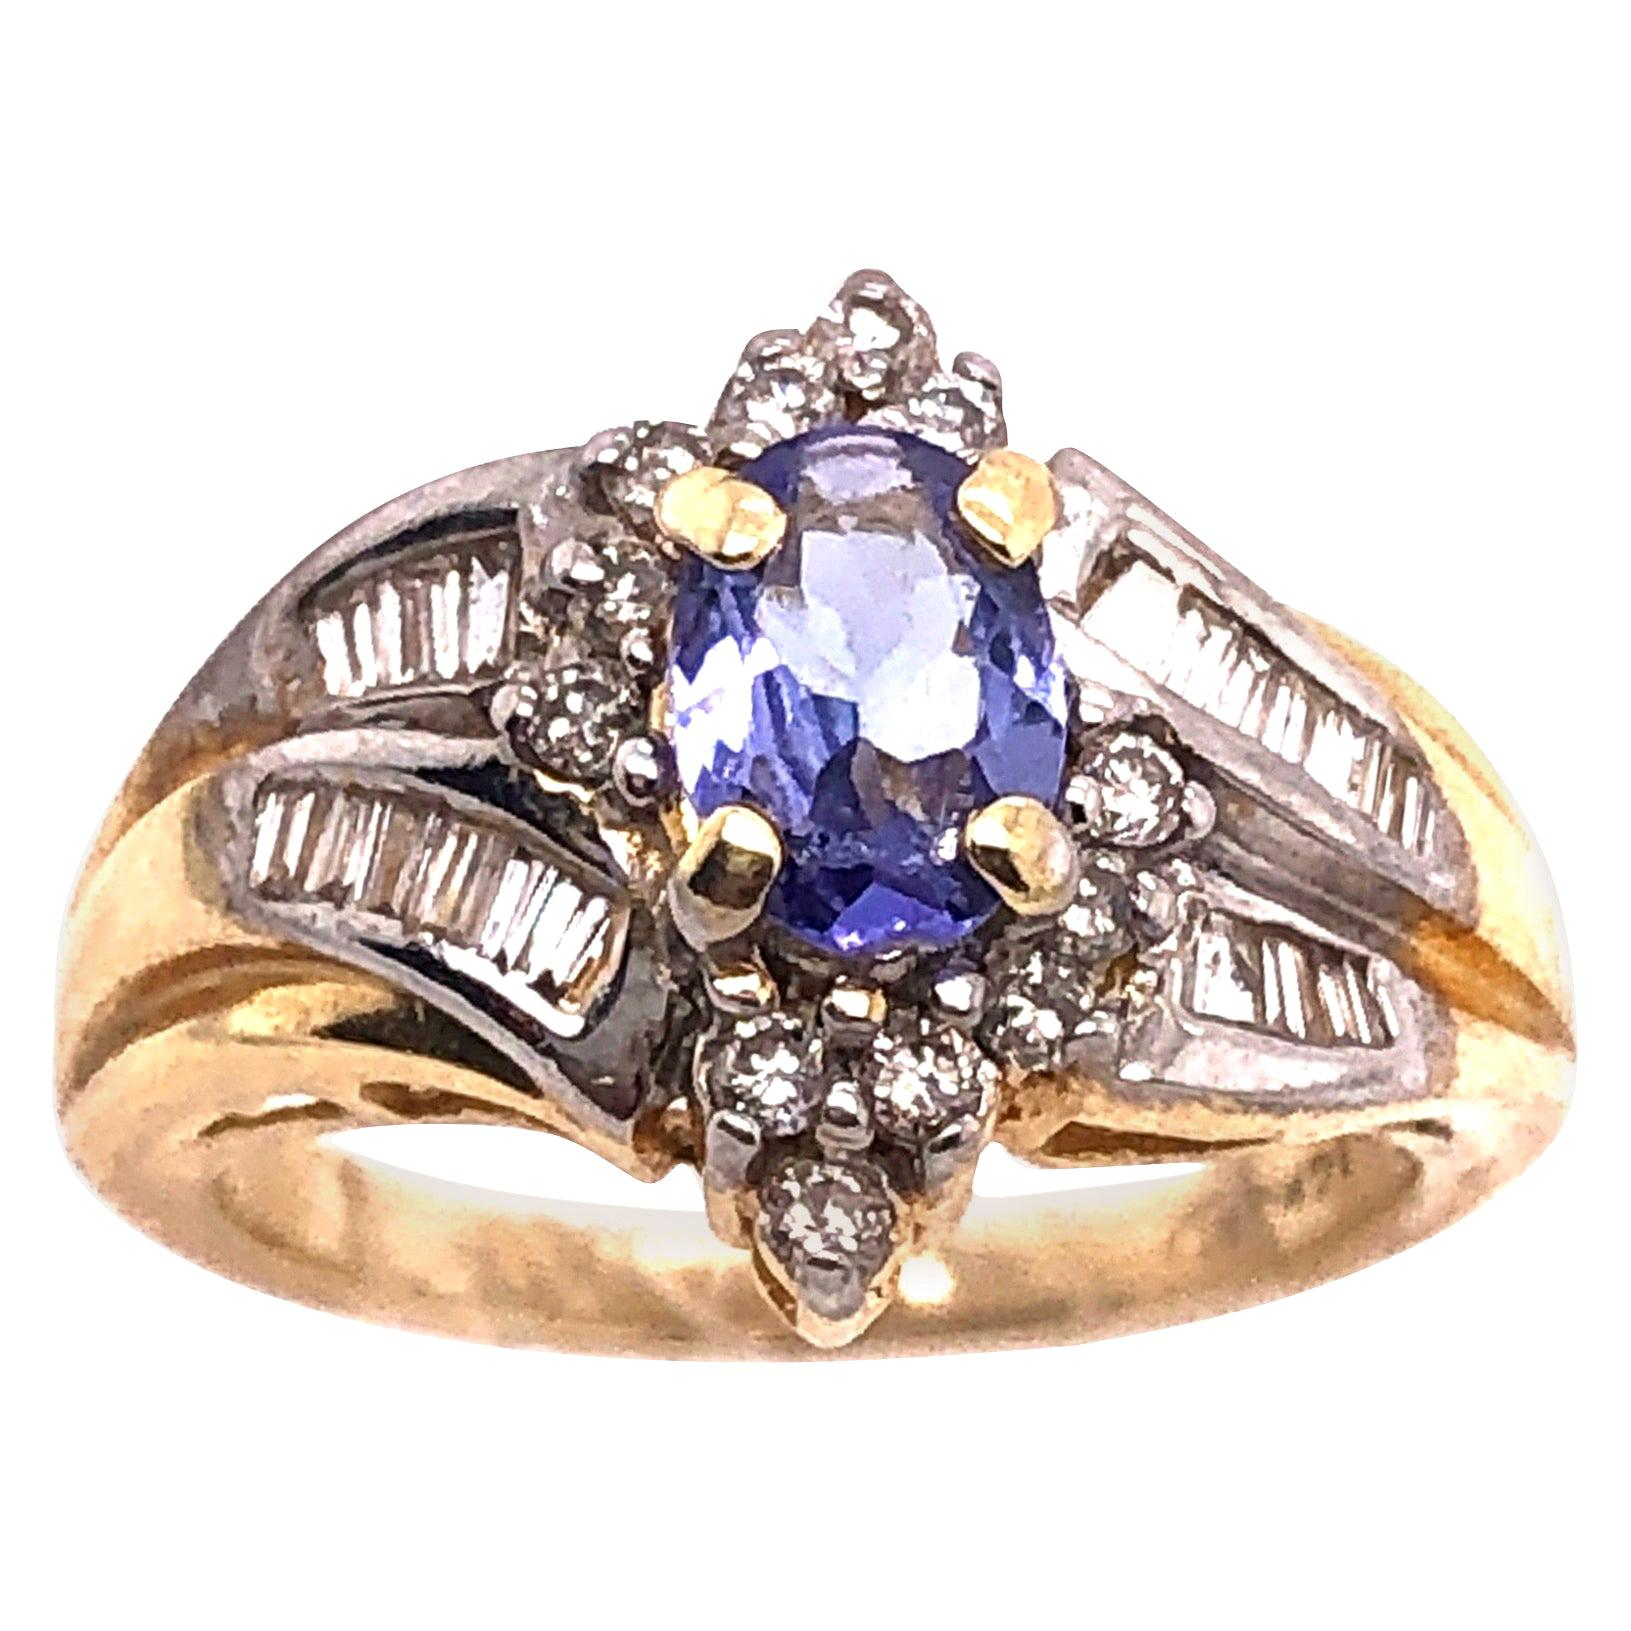 14 Karat Yellow Gold Contemporary Ring with Topaz and Diamonds